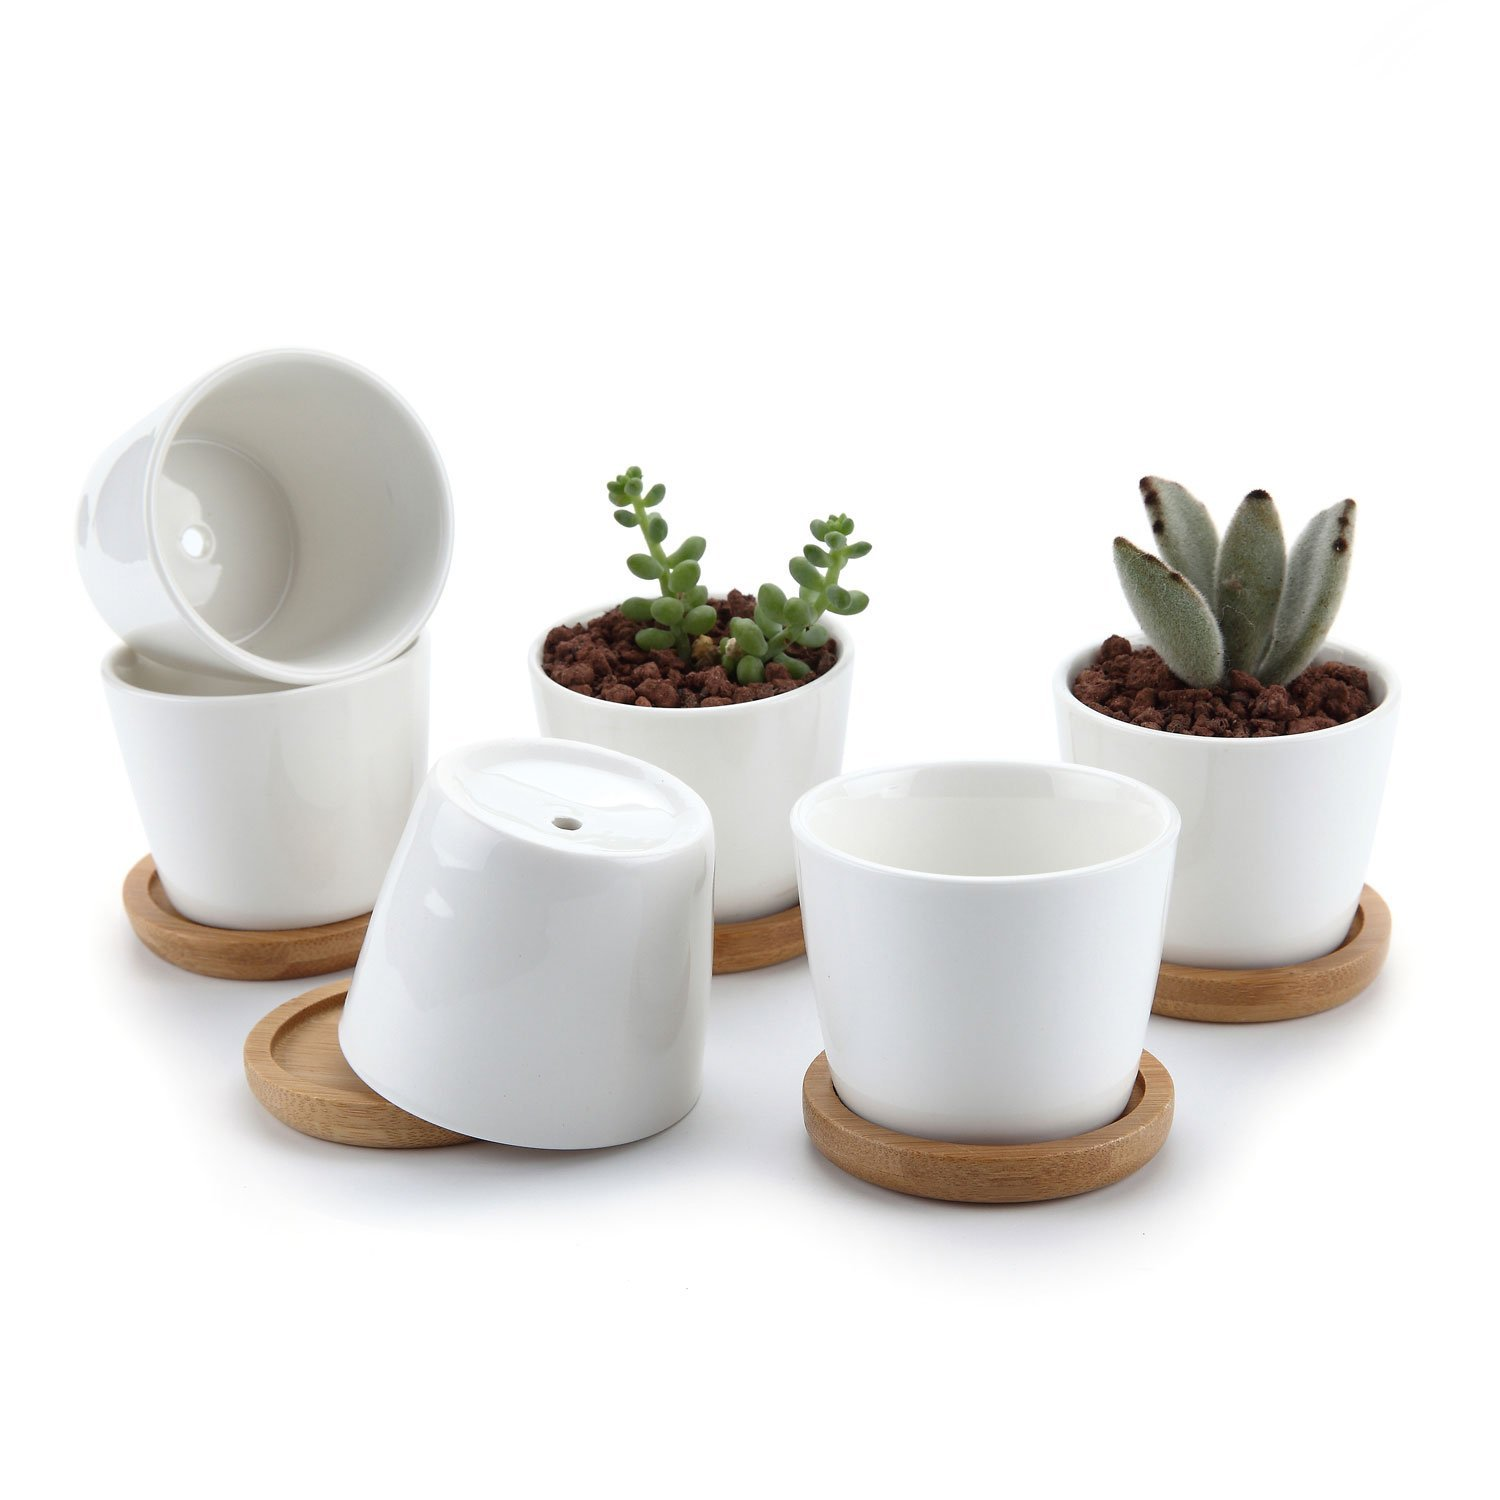 T4U 2.5 Inch Ceramic White Round Simple Design succulent Plant Pot/Cactus Plant Pot Flower Pot with bamboo tray/Container/Planter White Package 1 Pack of 6